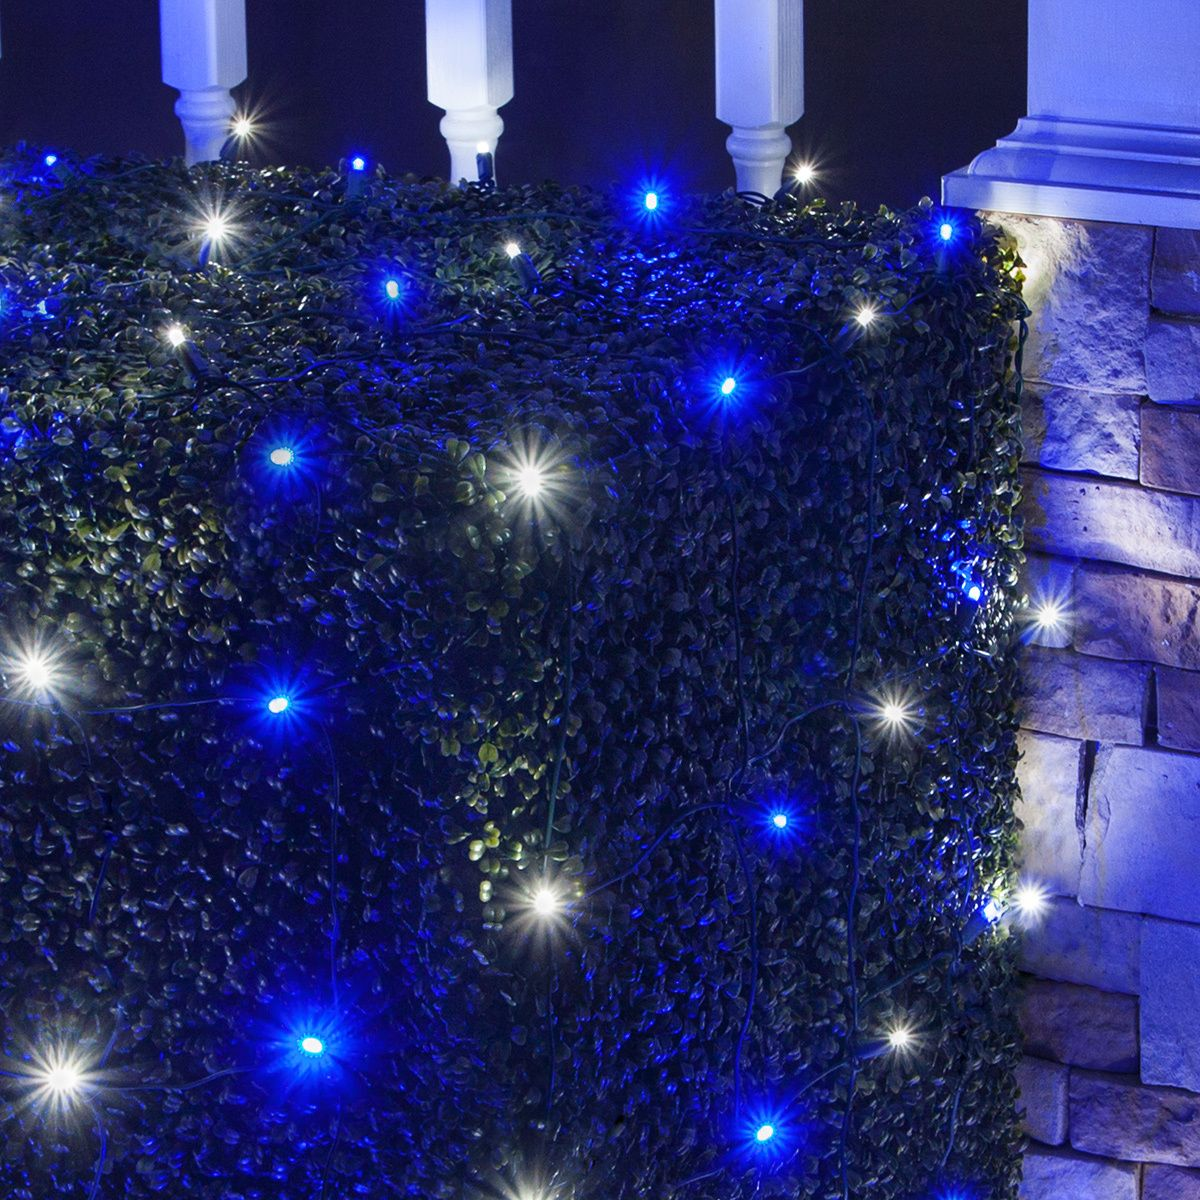 4 x 6 led net lights 100 blue cool white lamps green wire 4 x 6 led net lights 100 blue cool white lamps green wire christmas lights decoroutdoor mozeypictures Images